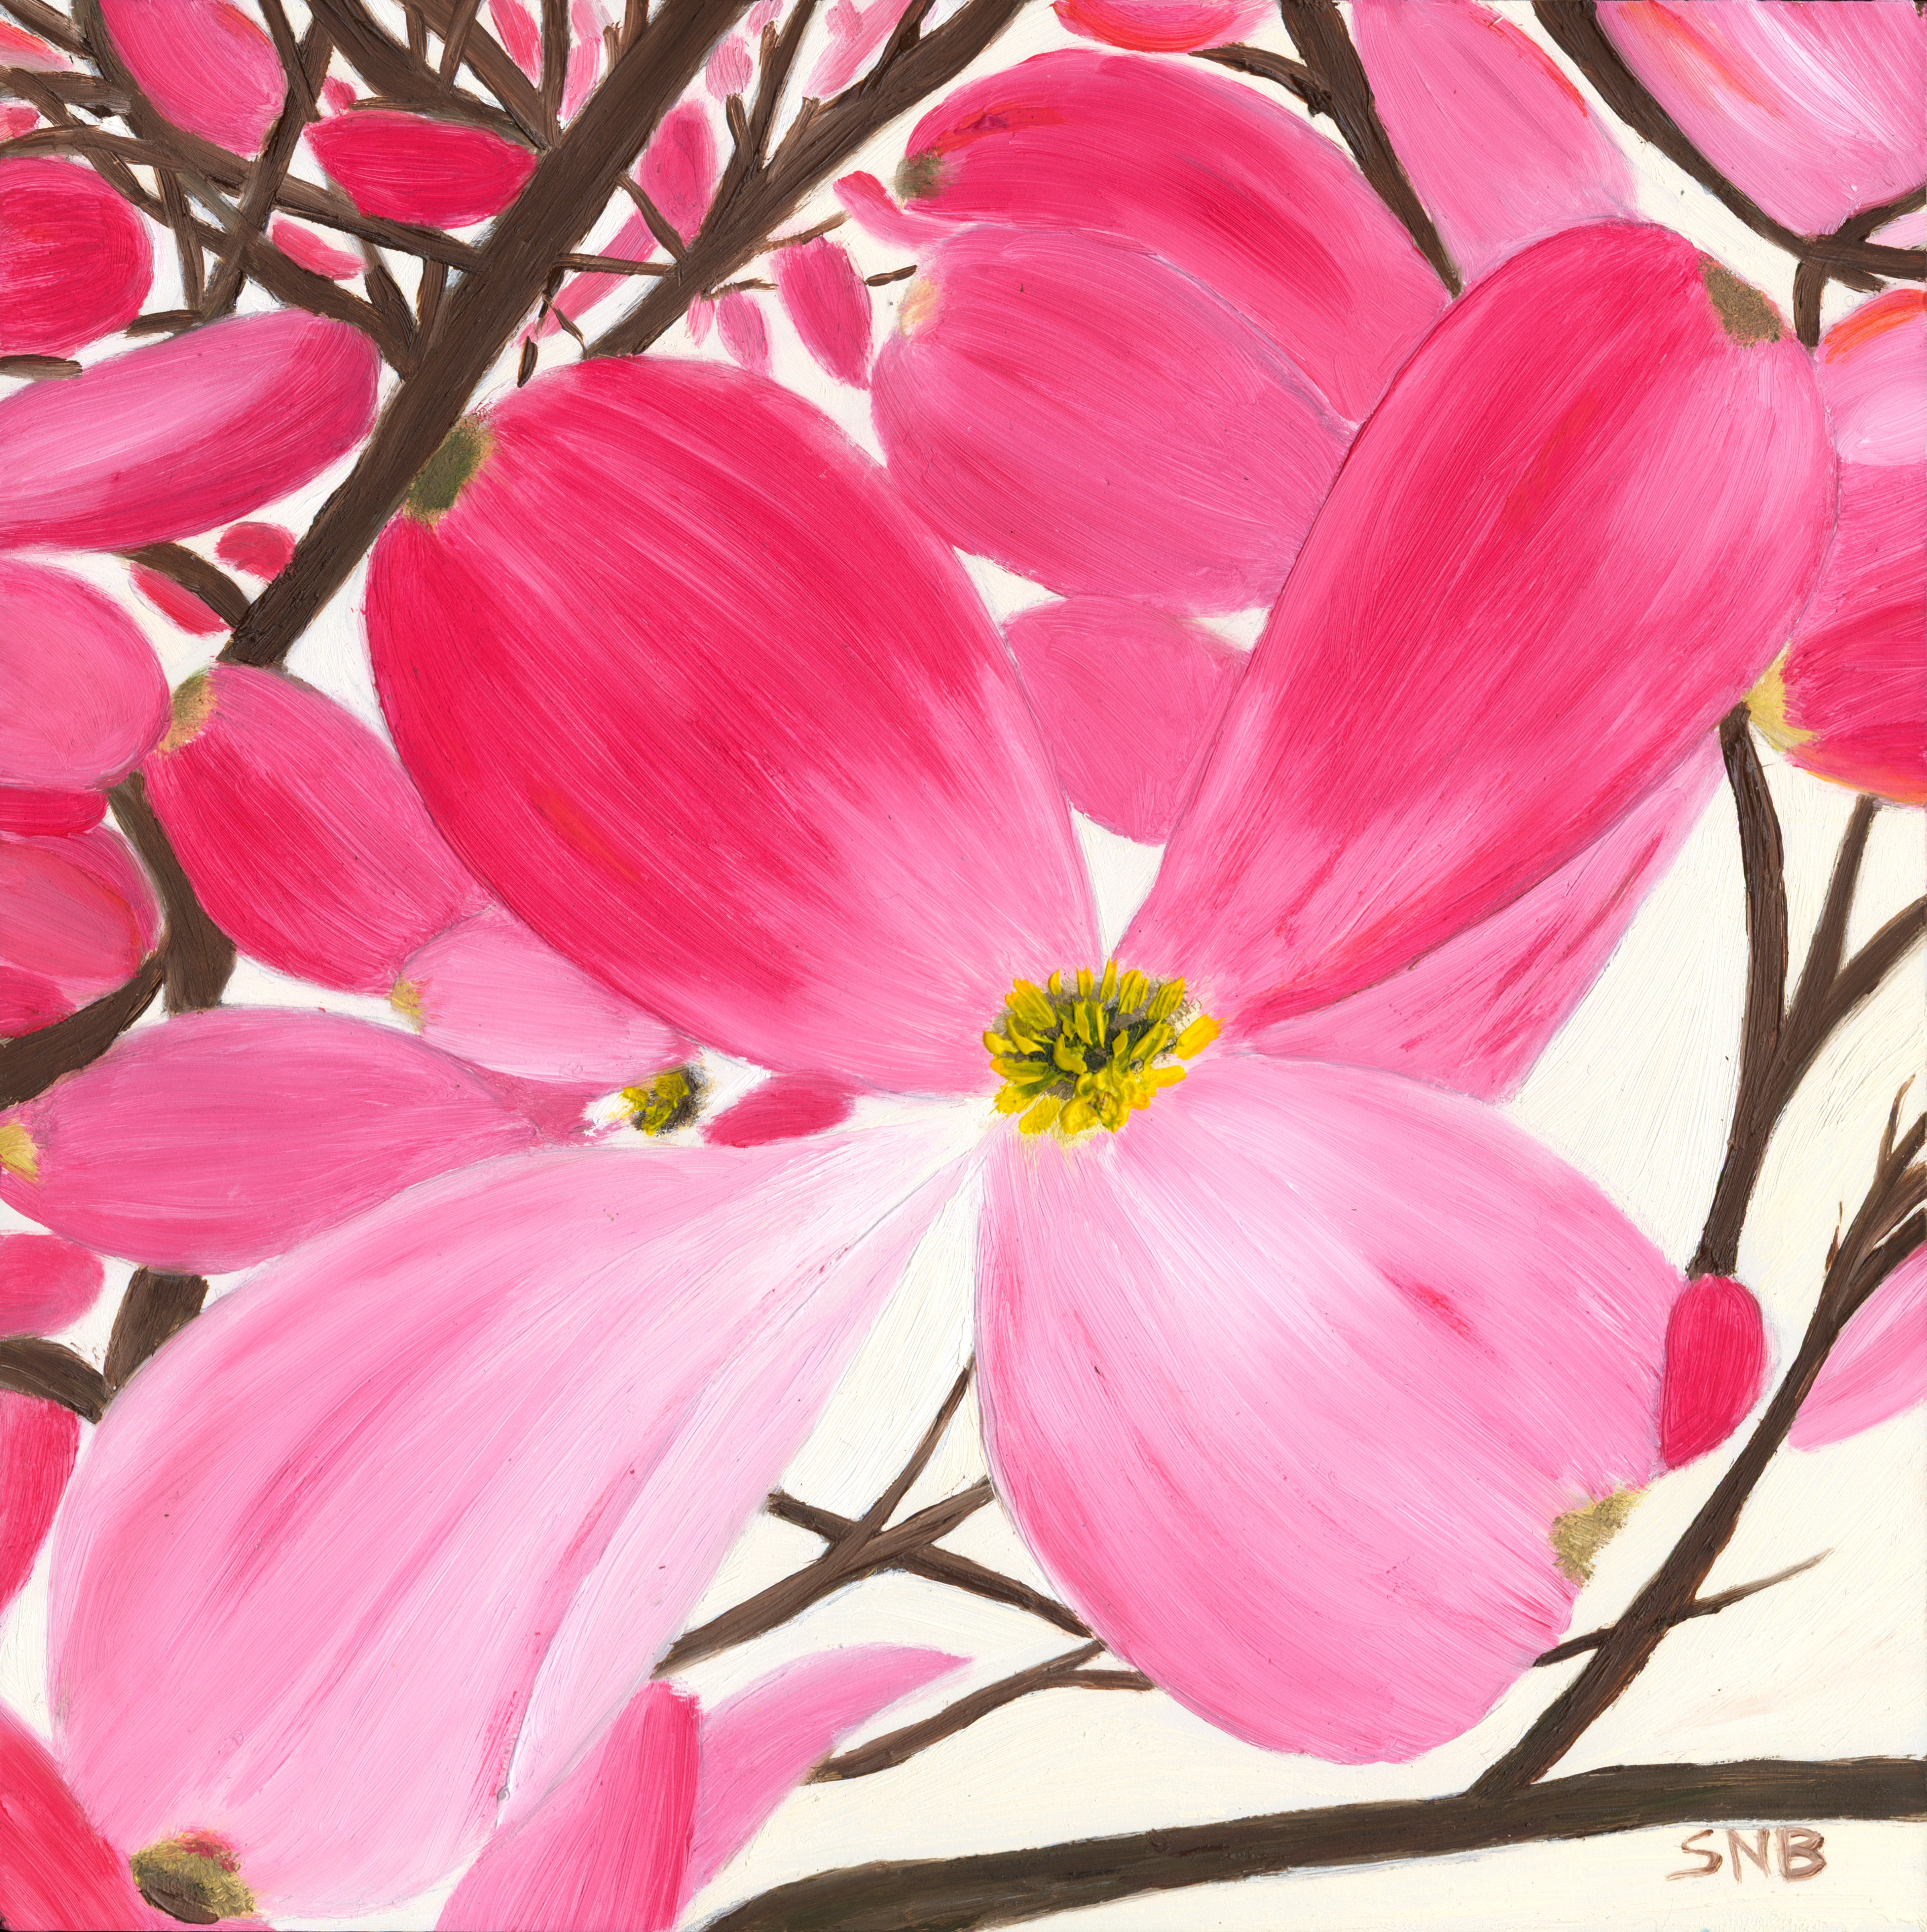 Dogwood Bloom, an 8 x 8 Oil Painting on Canvas. The Painting is of a large pink dogwood bloom on a tree branch with multiple blooms and branches in the background painted on an off white background